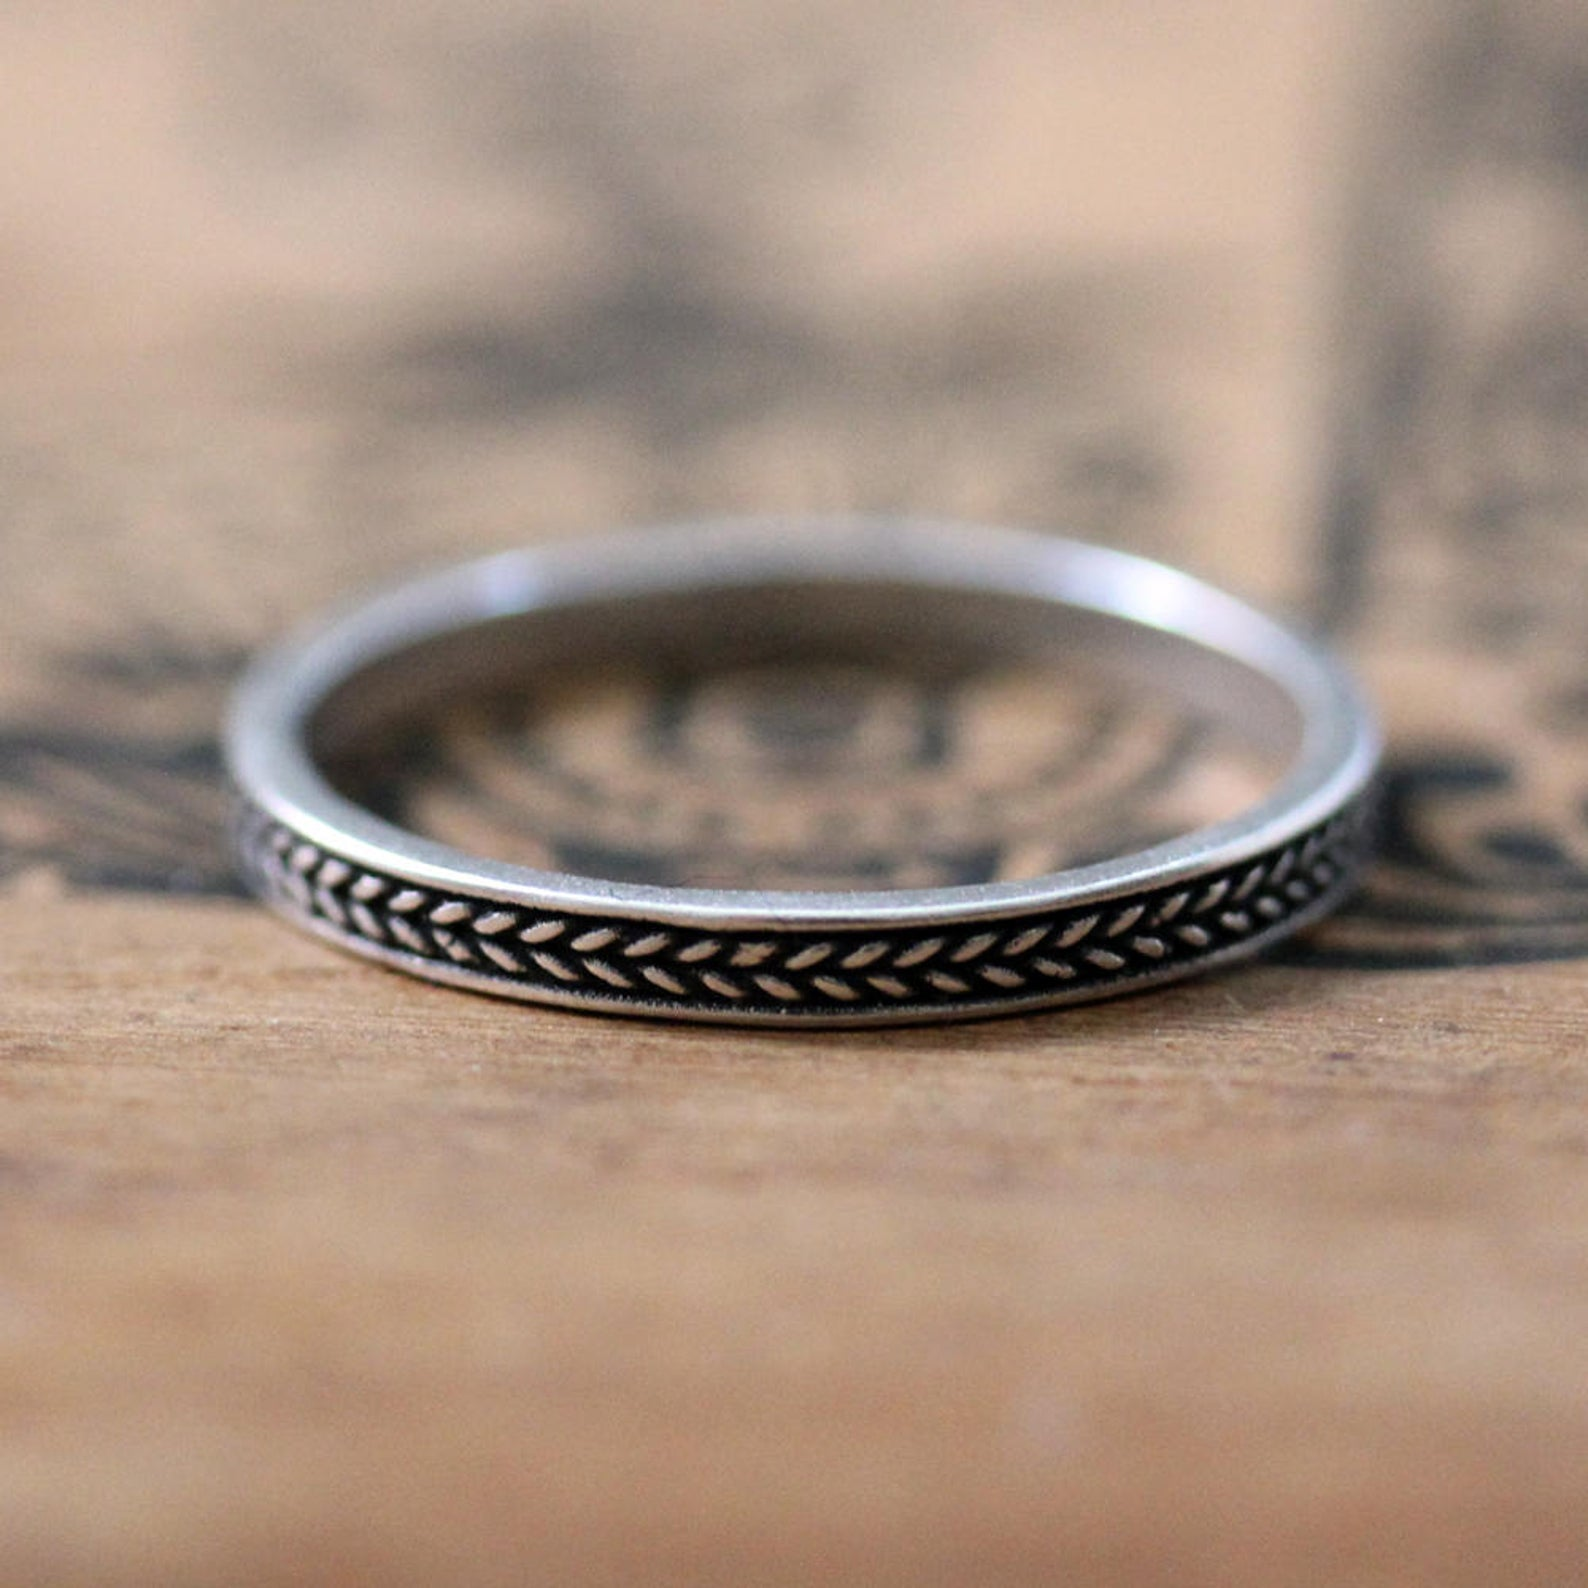 3mm Oxidized Silver Braided Band - Wheat